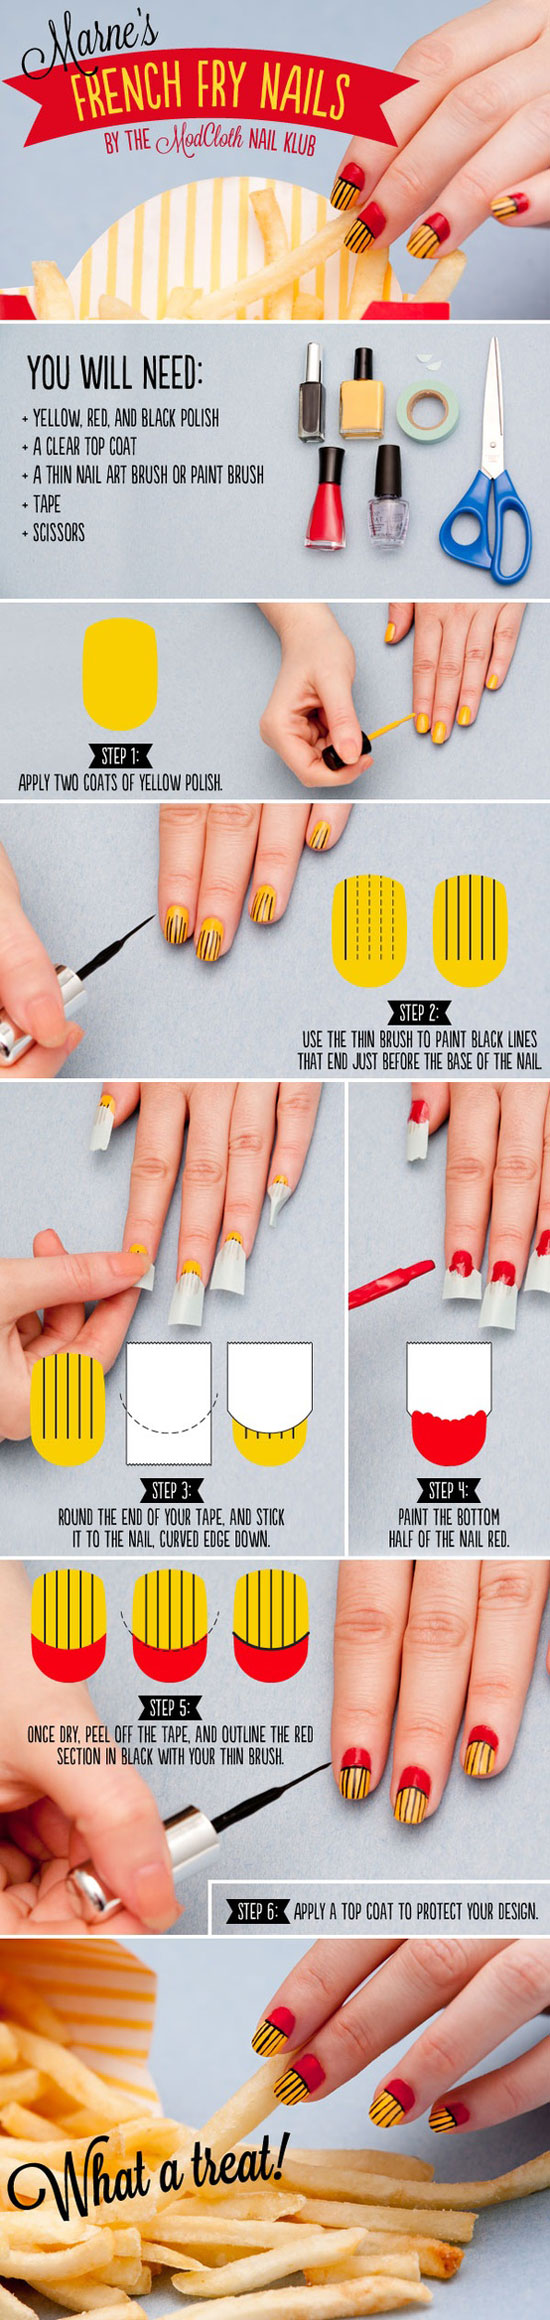 25-Best-Easy-Nail-Art-Tutorials-2012-For-Beginners-Learners-17